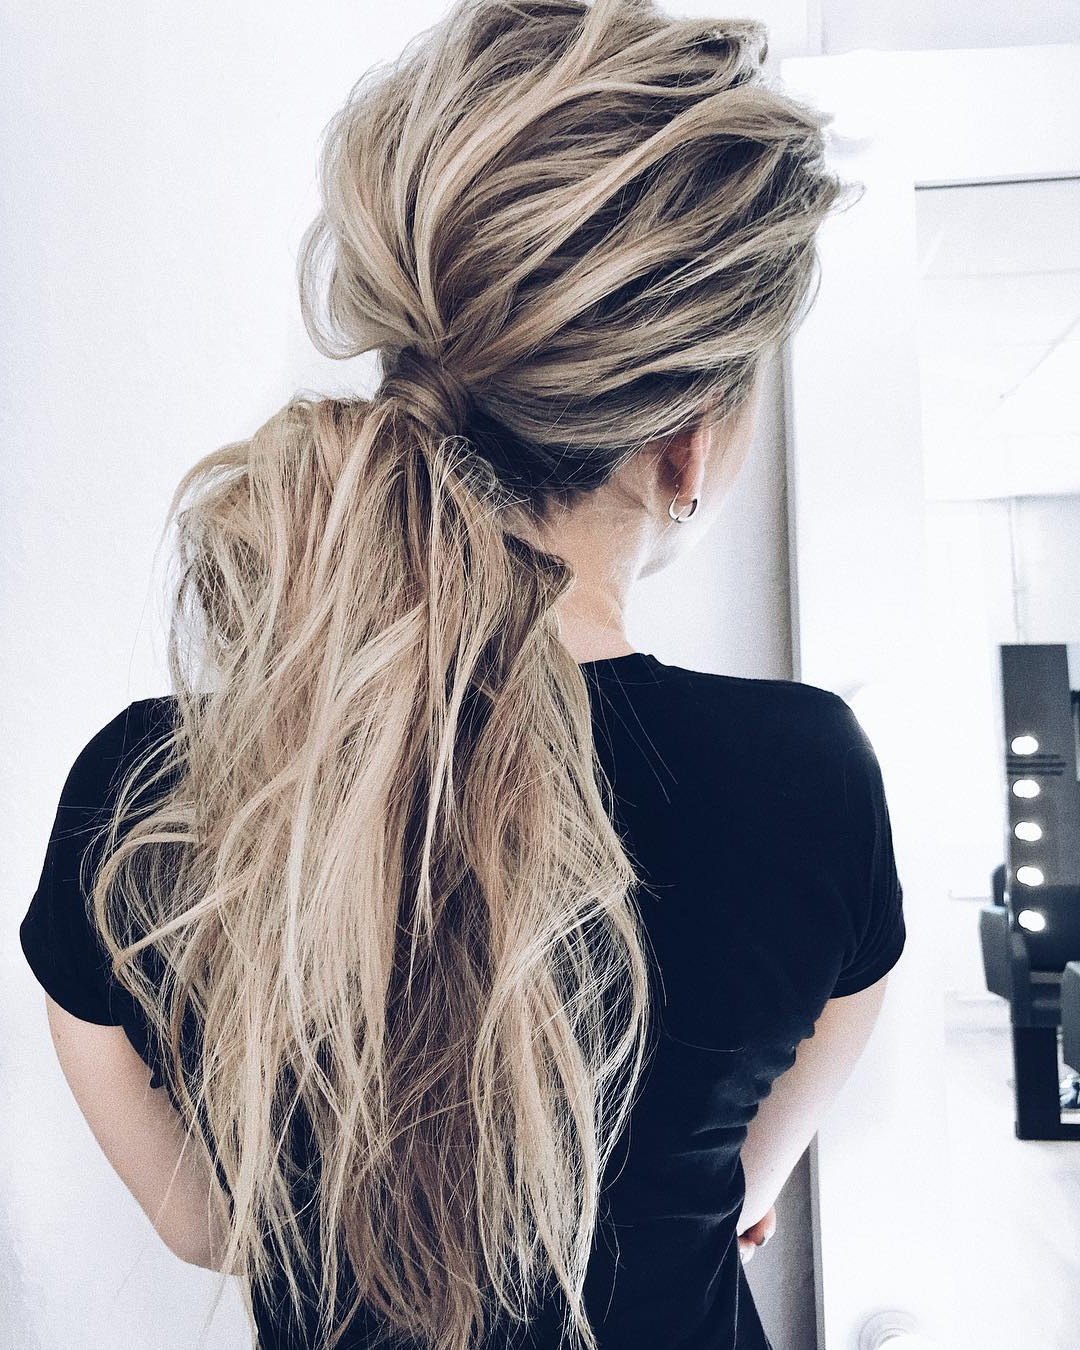 Newest Teased Prom Updos With Cute Headband Inside 10 Creative Ponytail Hairstyles For Long Hair, Summer Hairstyle (View 14 of 20)